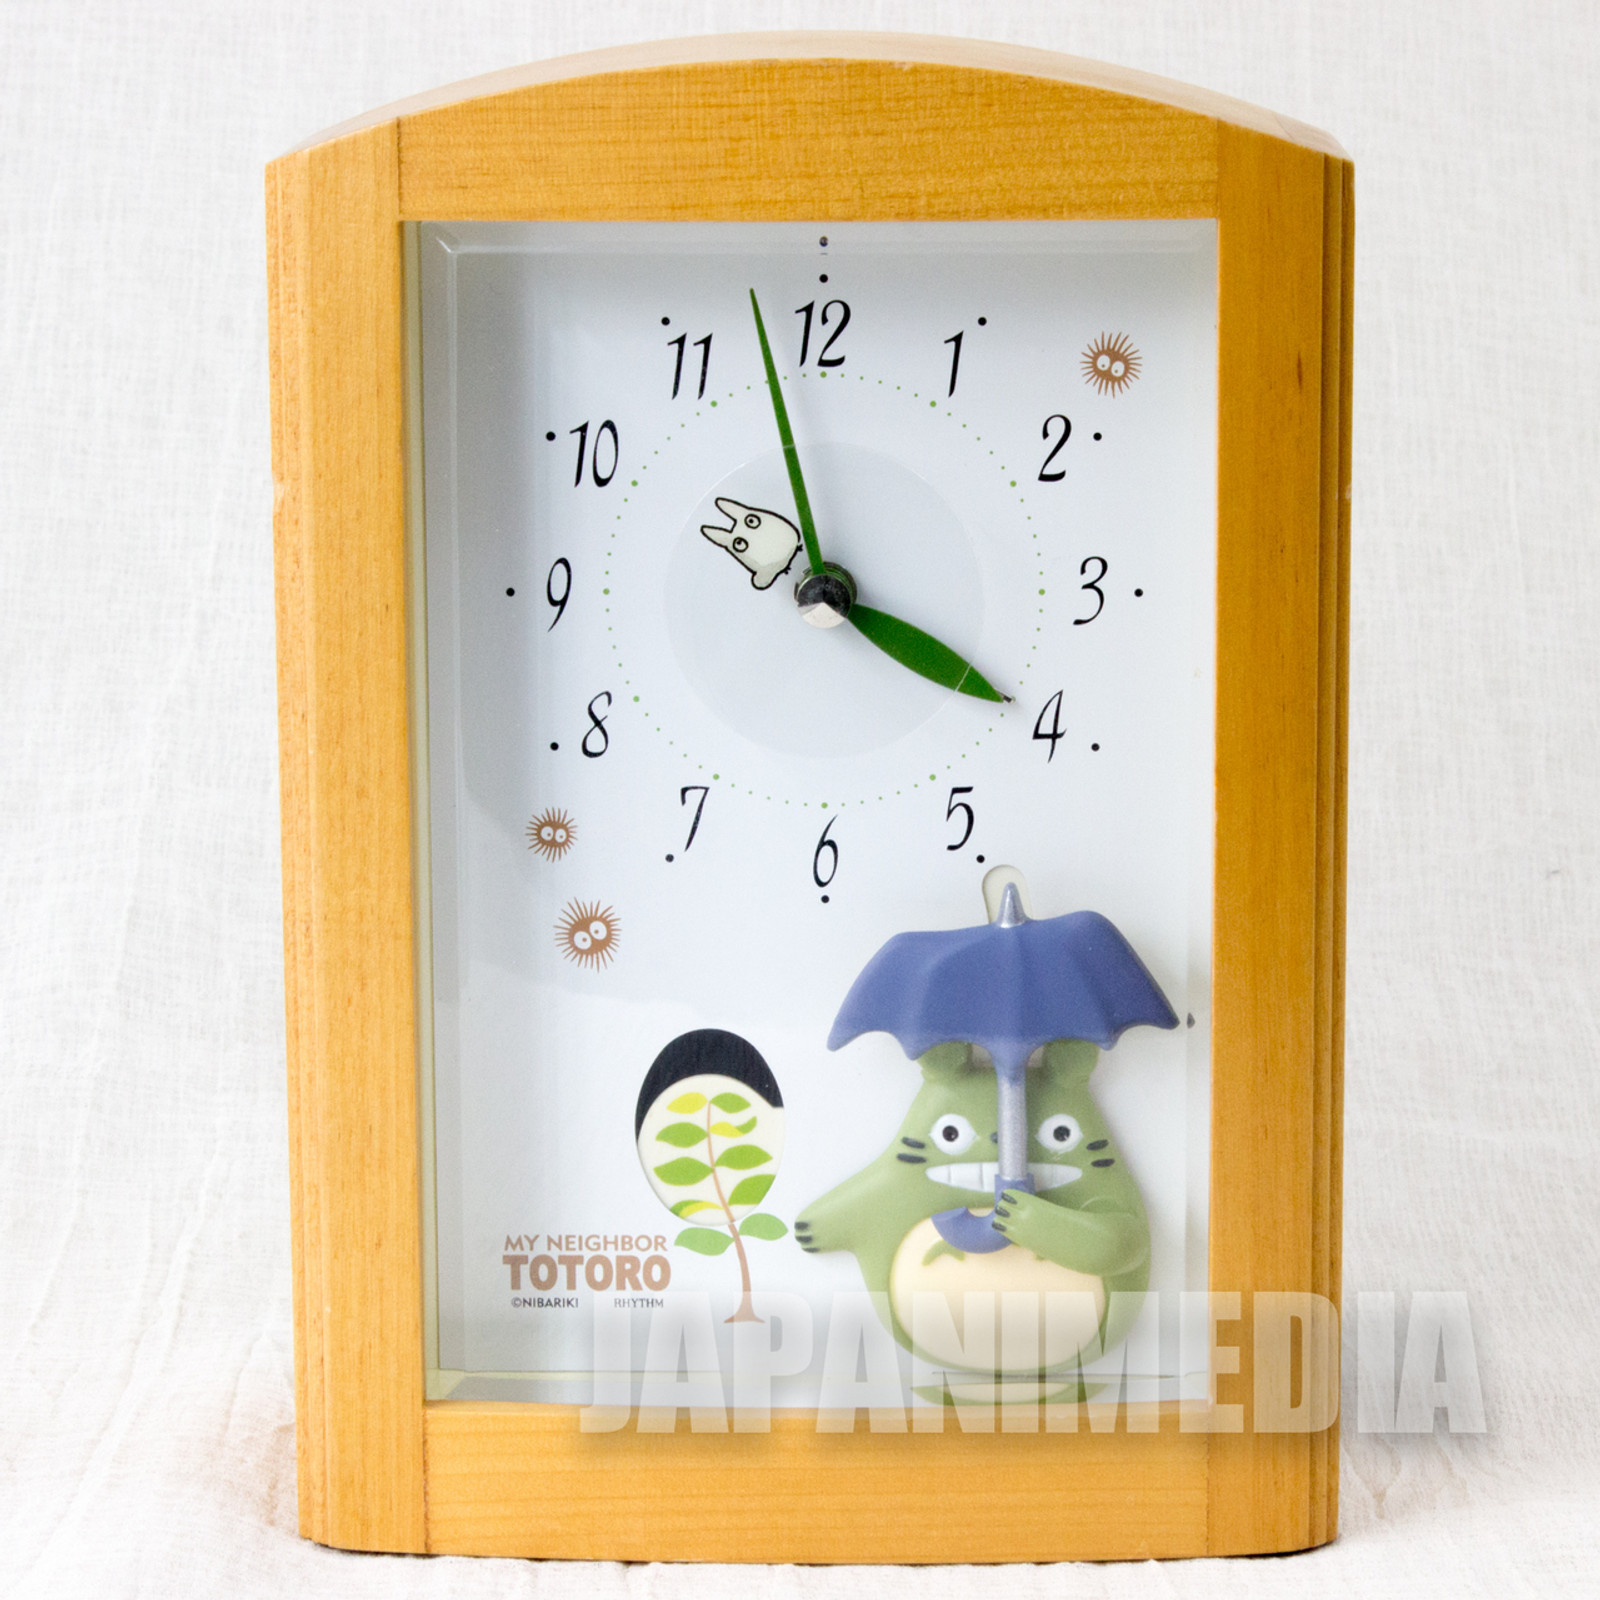 RARE! My Neighbor Totoro Desktop Alarm Clock Rhythm Nibariki Ghibli JAPAN ANIME MANGA